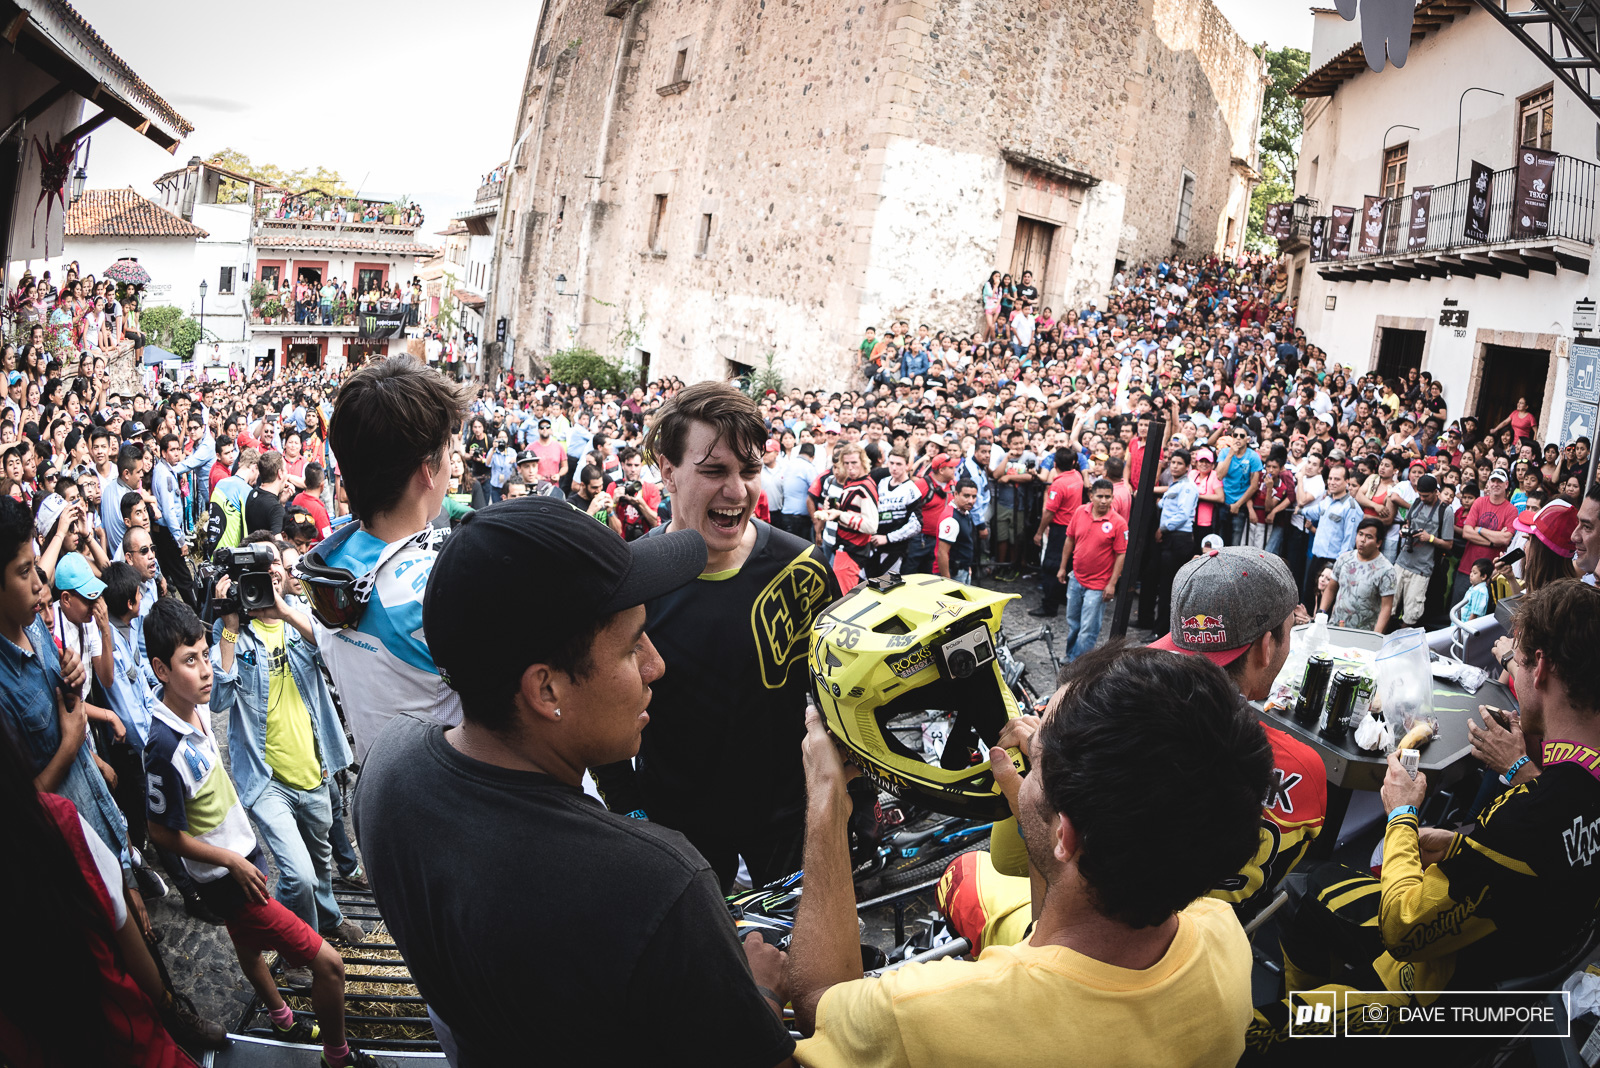 Massive crowds greeted riders once again in Taxco.